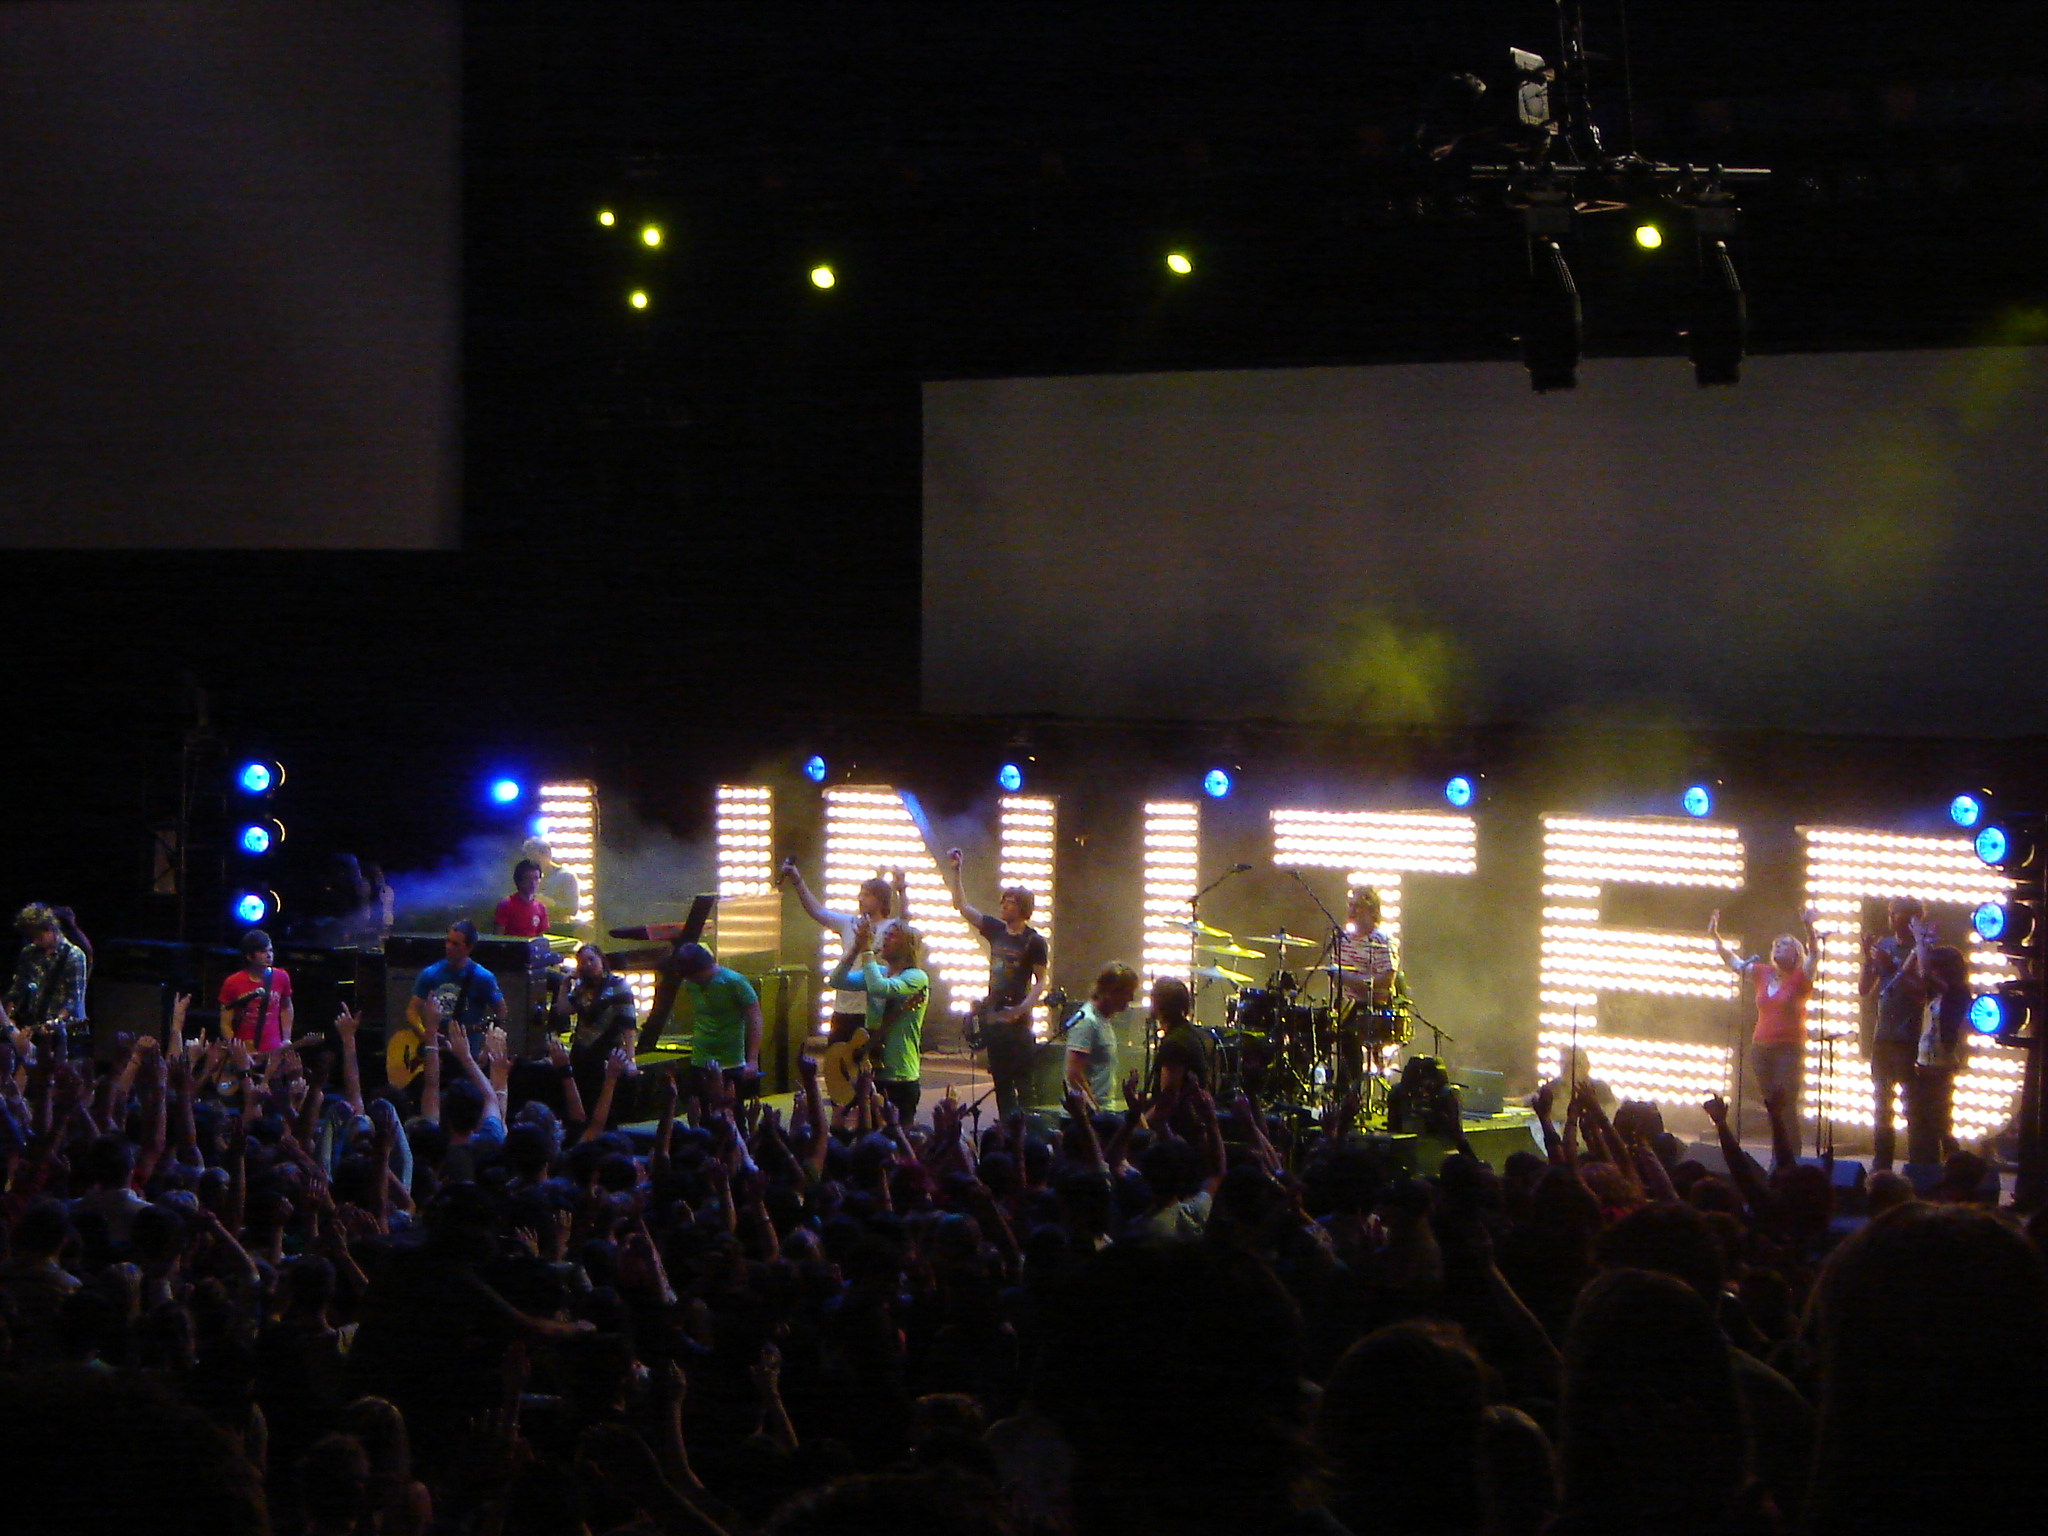 HILLSONG WORSHIP WALLPAPERS FREE Wallpapers Background images 2048x1536